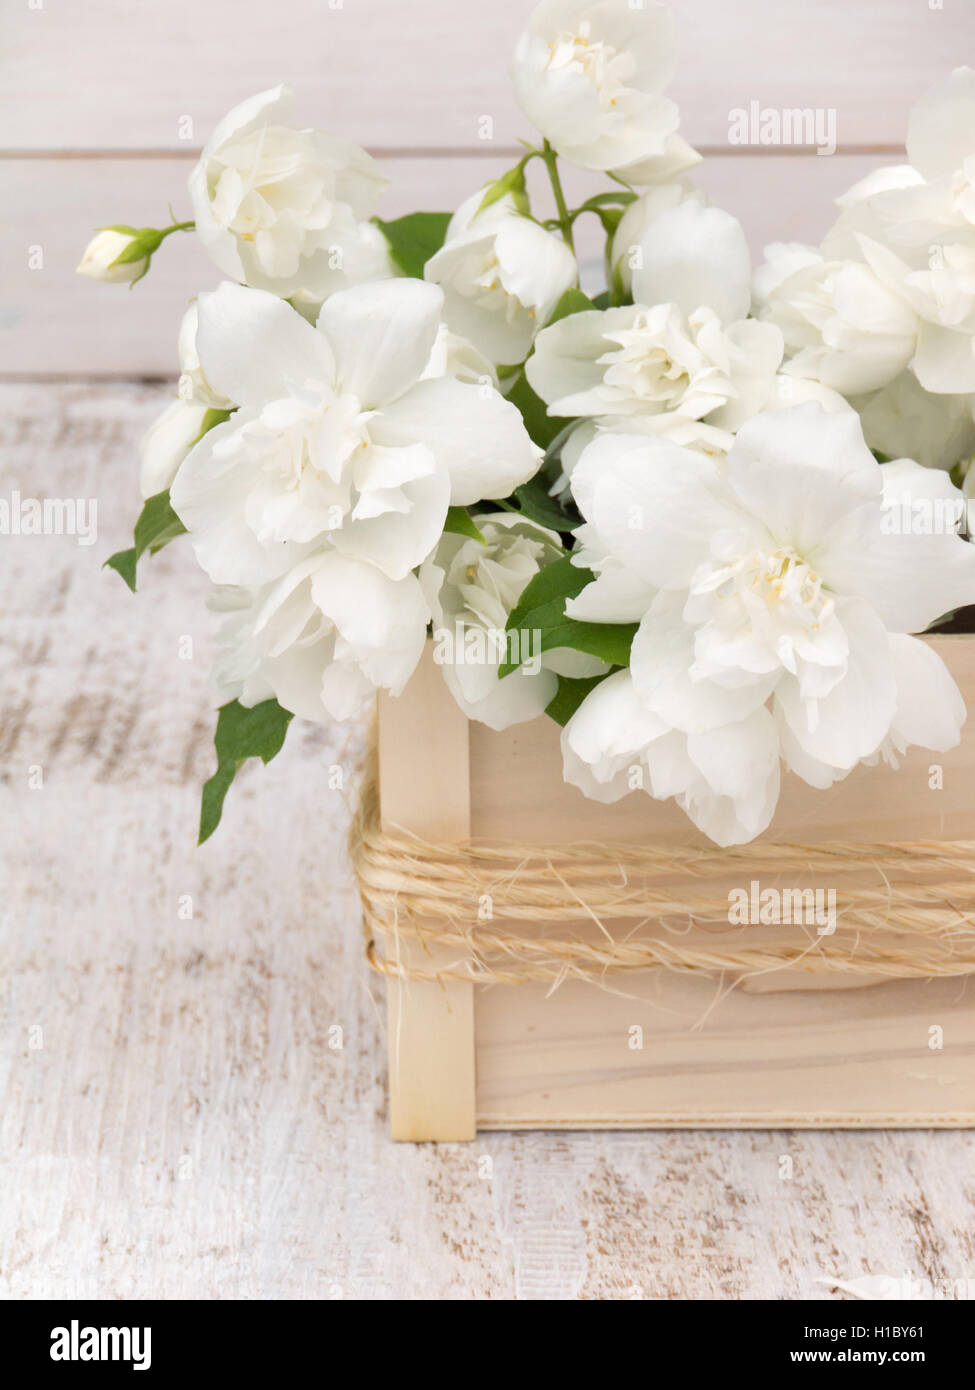 English dogwood bouquet in the wooden box on the white painted rough english dogwood bouquet in the wooden box on the white painted rough background izmirmasajfo